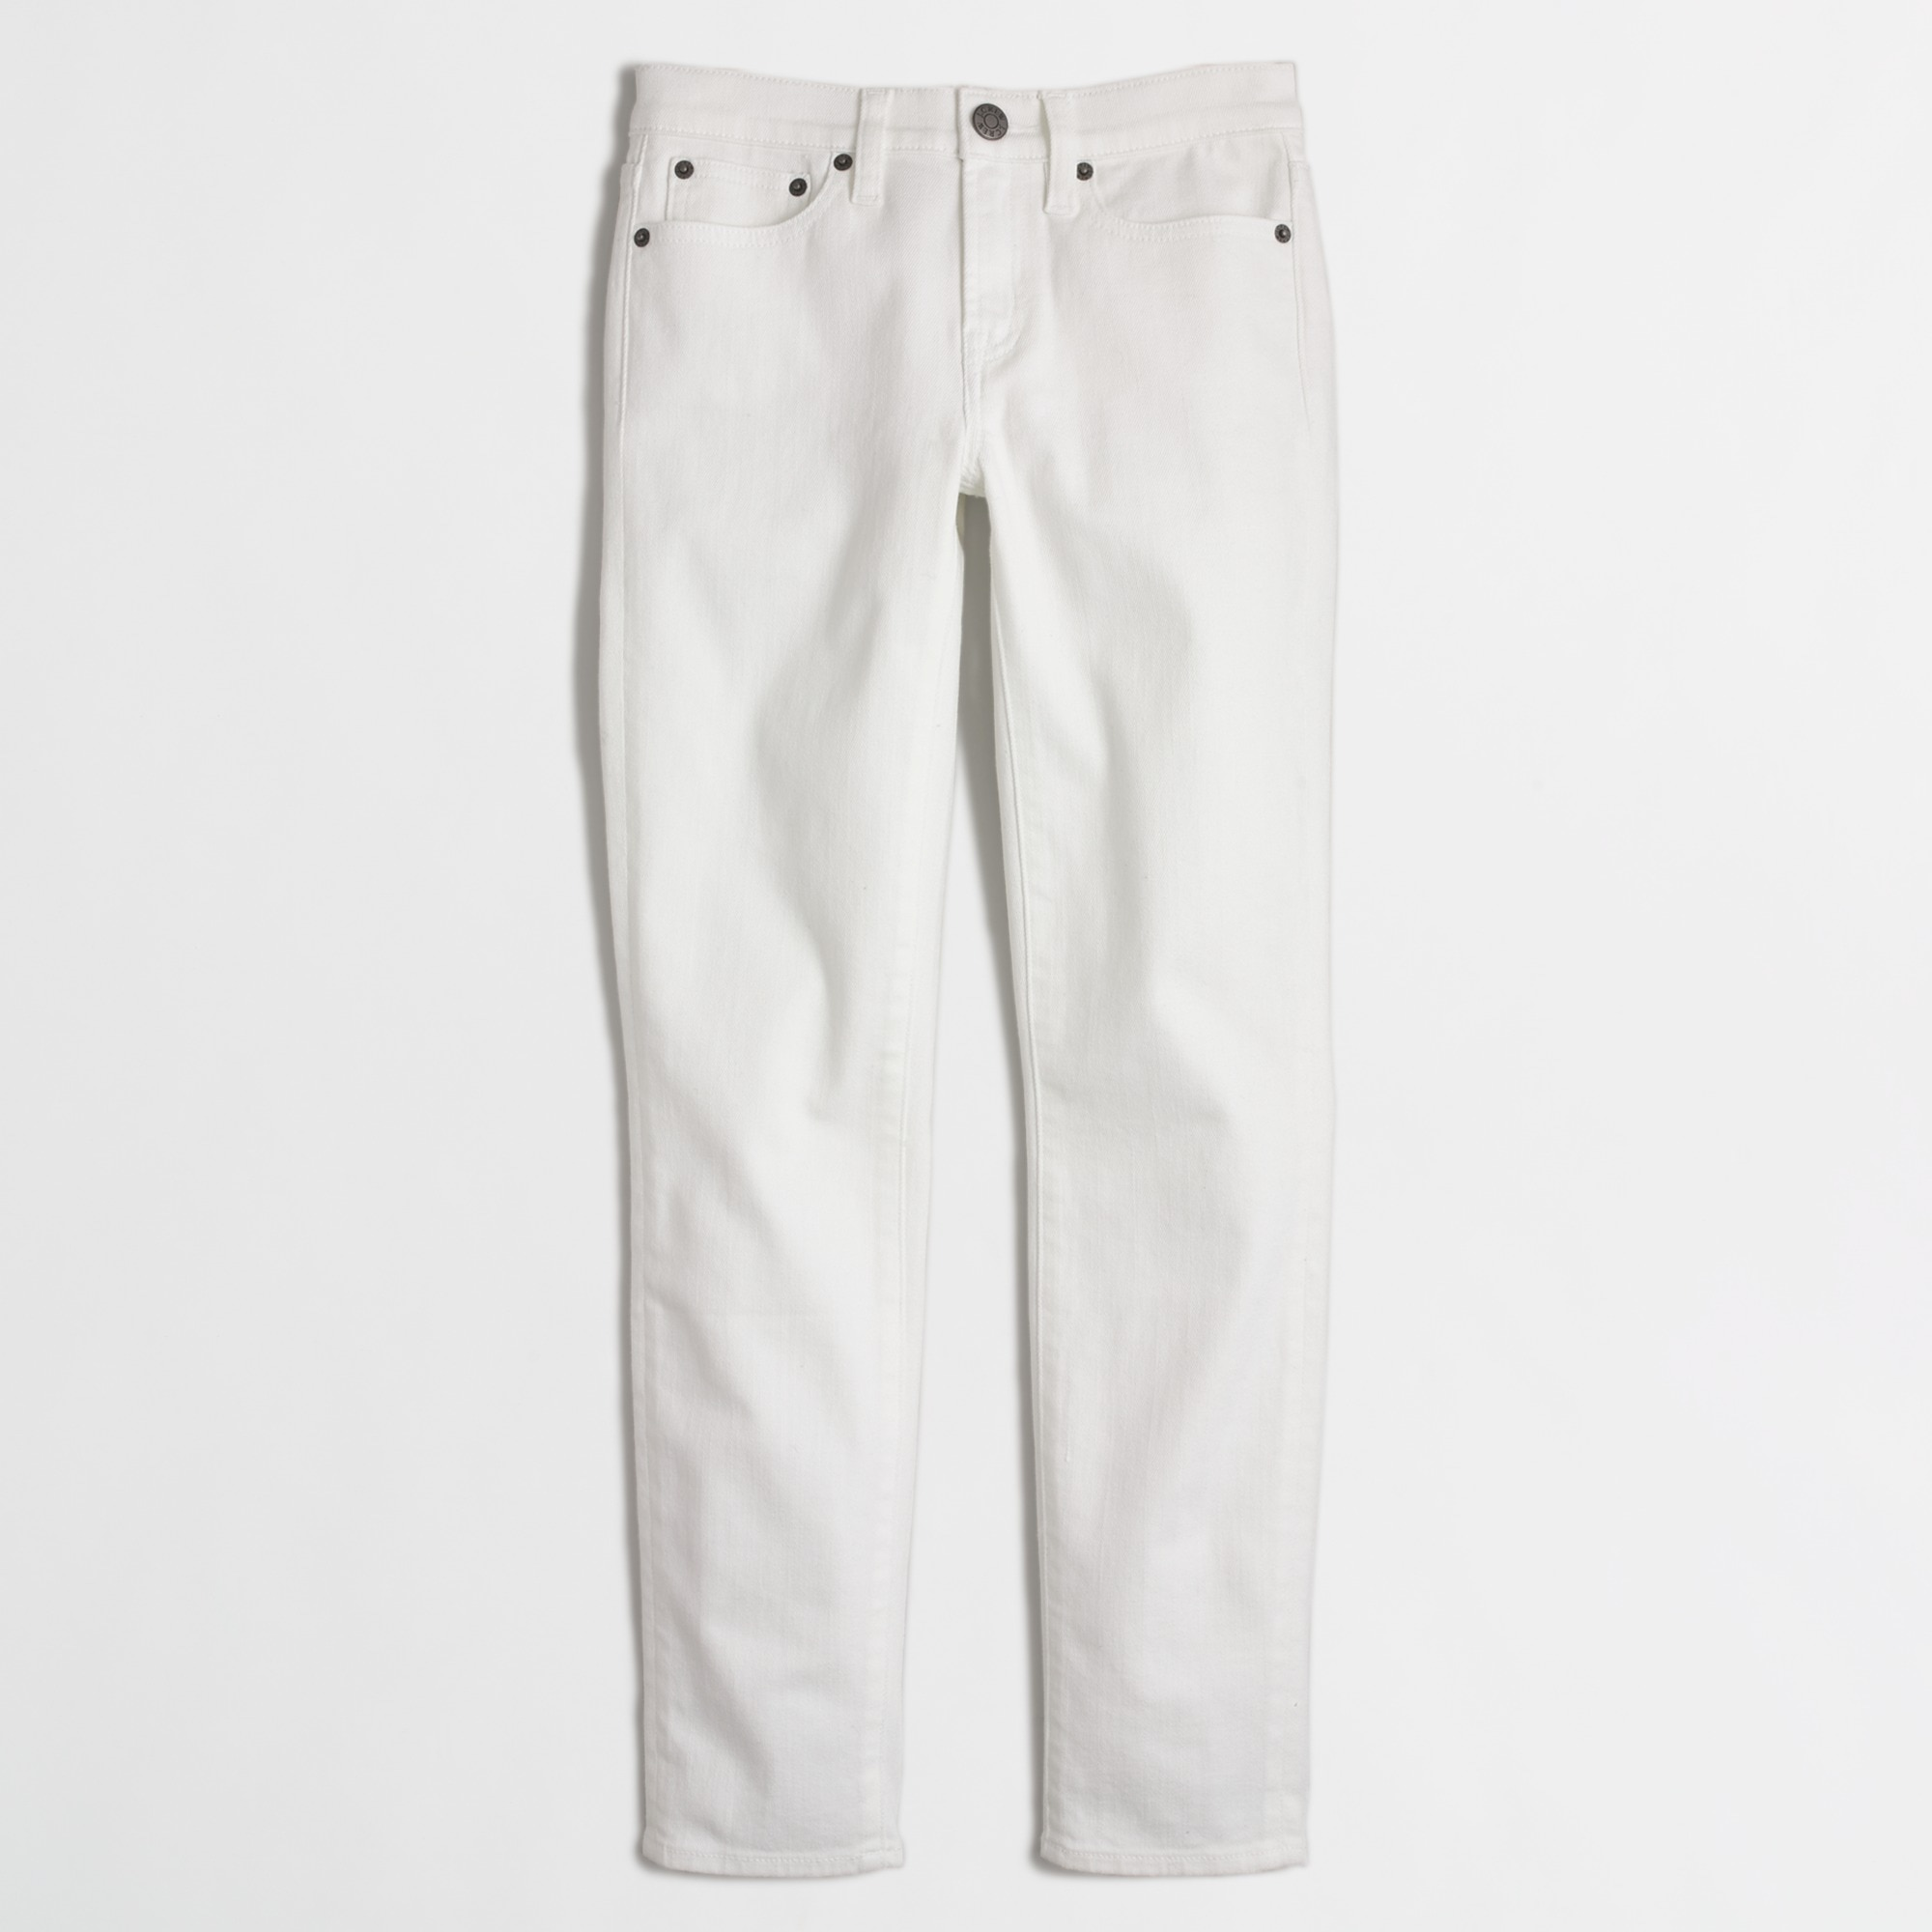 Skinny cropped jean in white